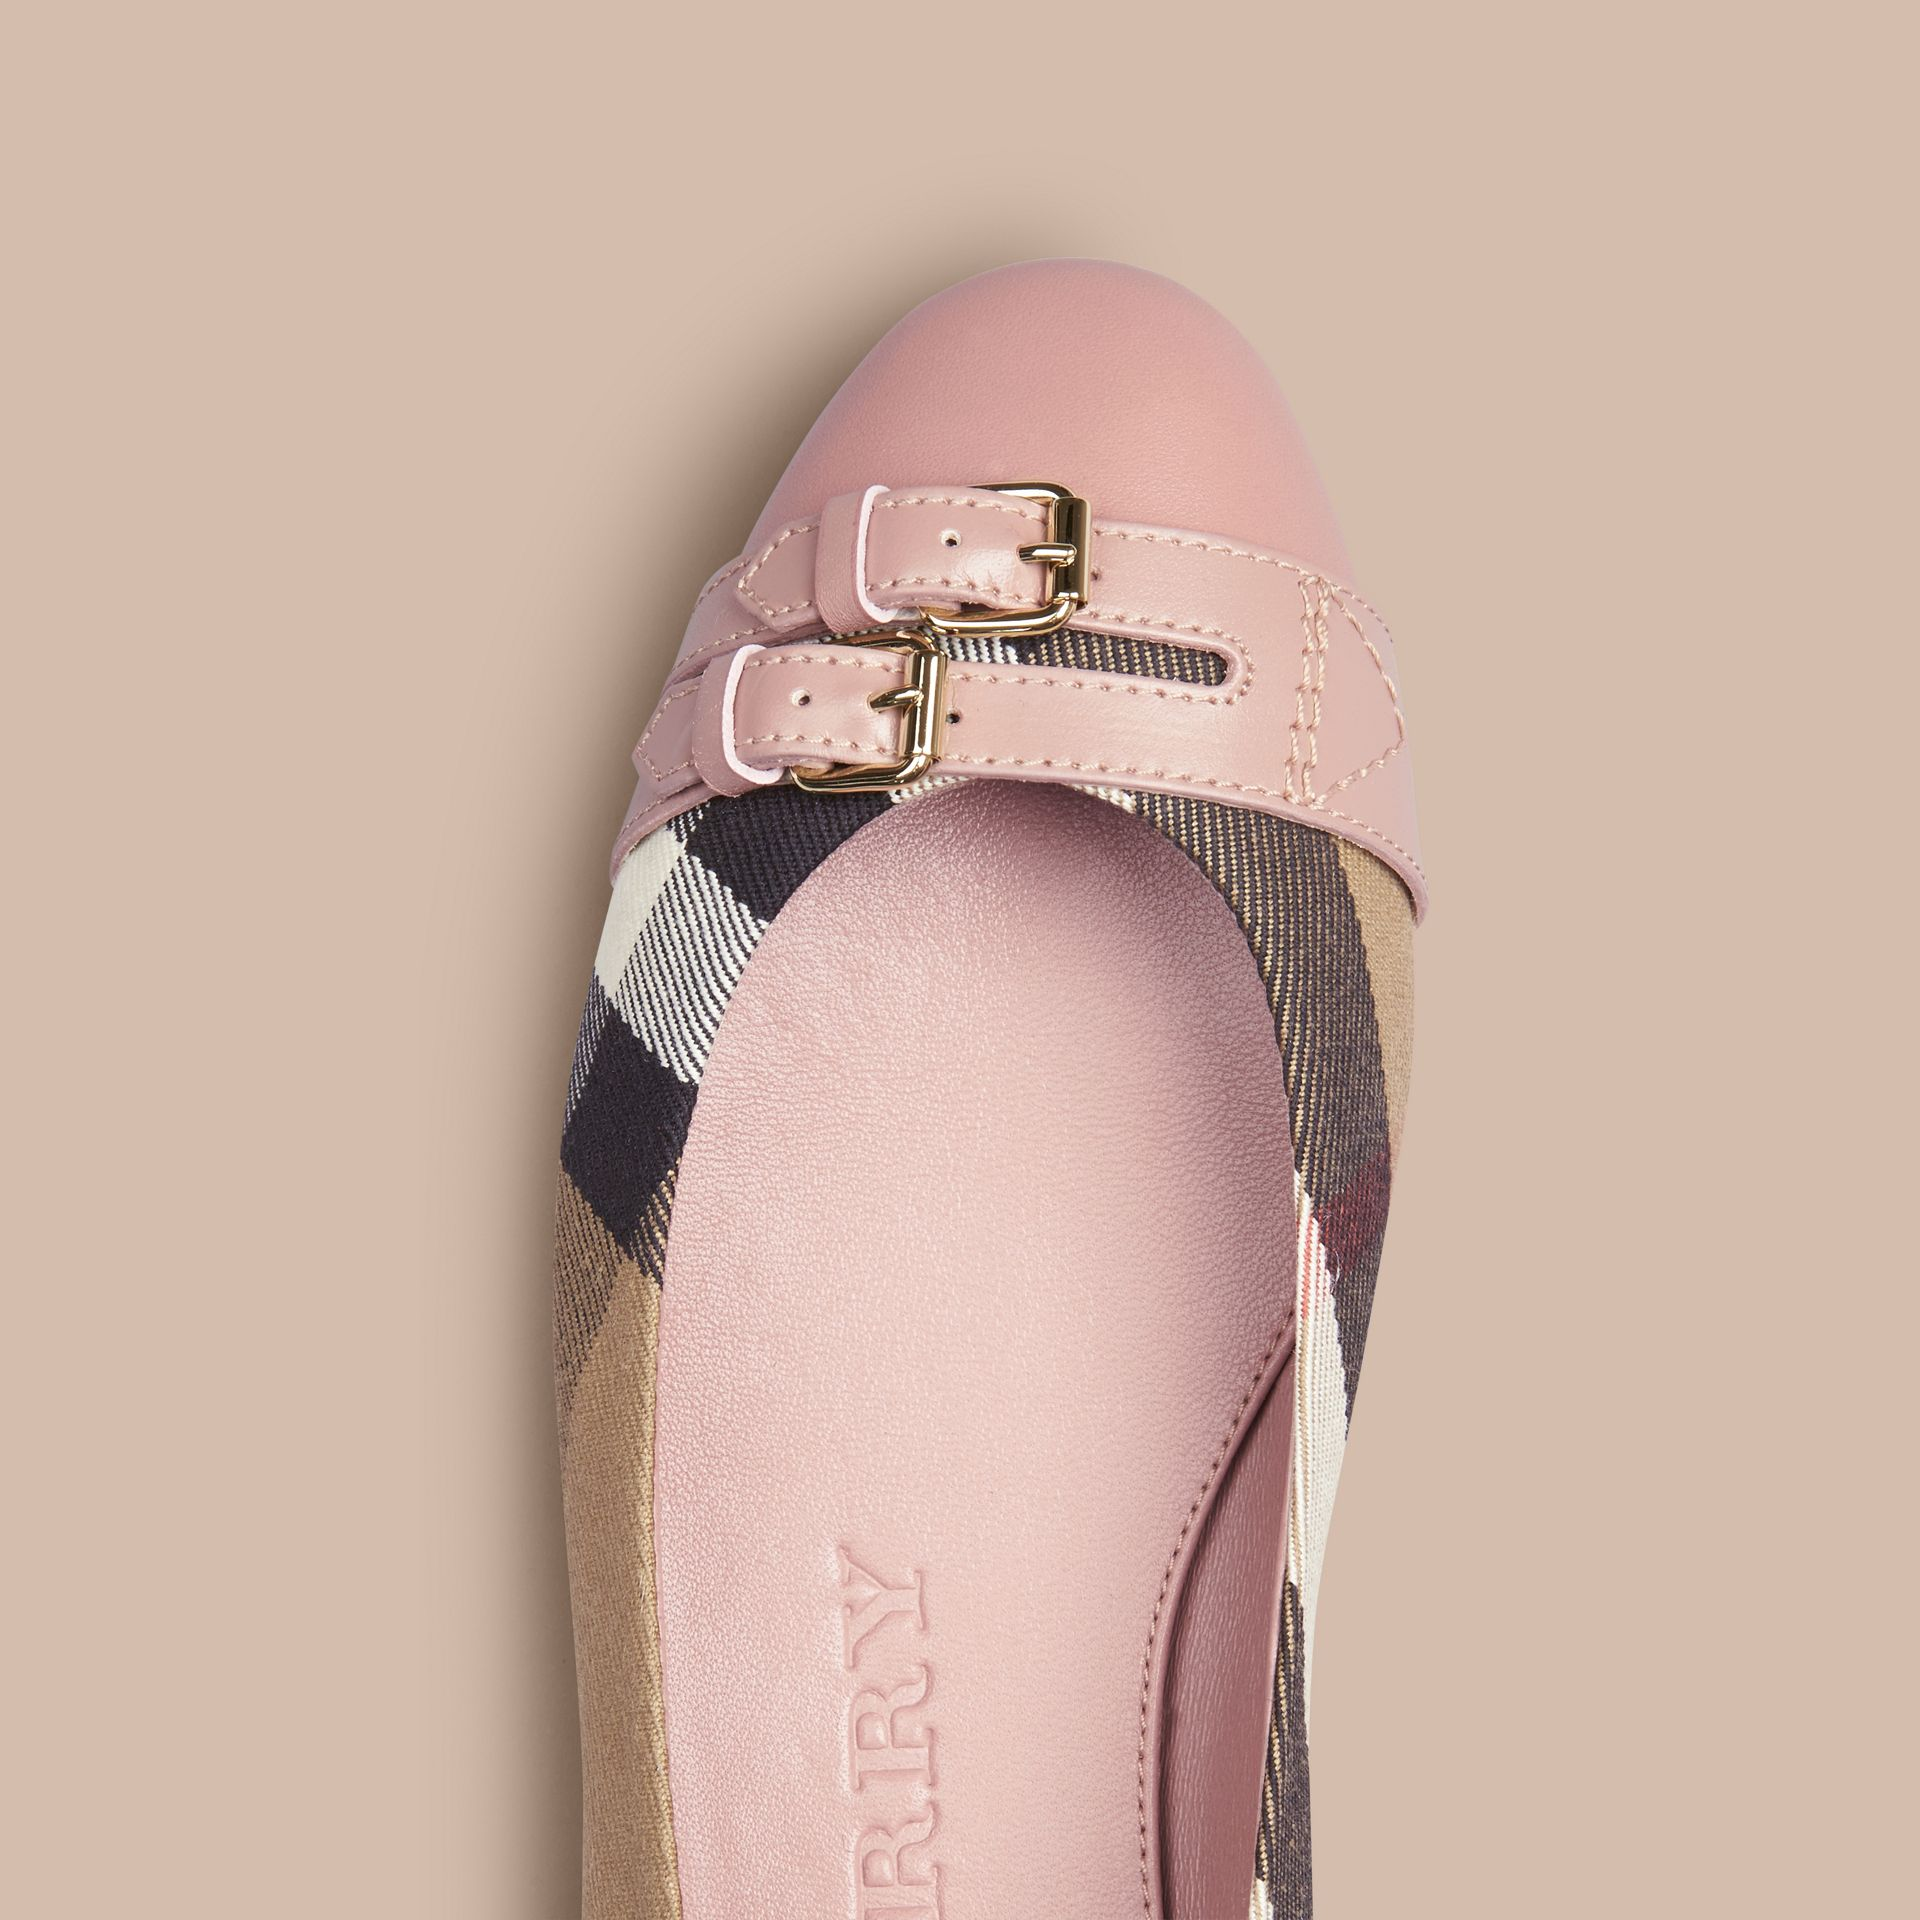 Ballerines à motif House check avec boucle (Nude Blush) - Femme | Burberry - photo de la galerie 2